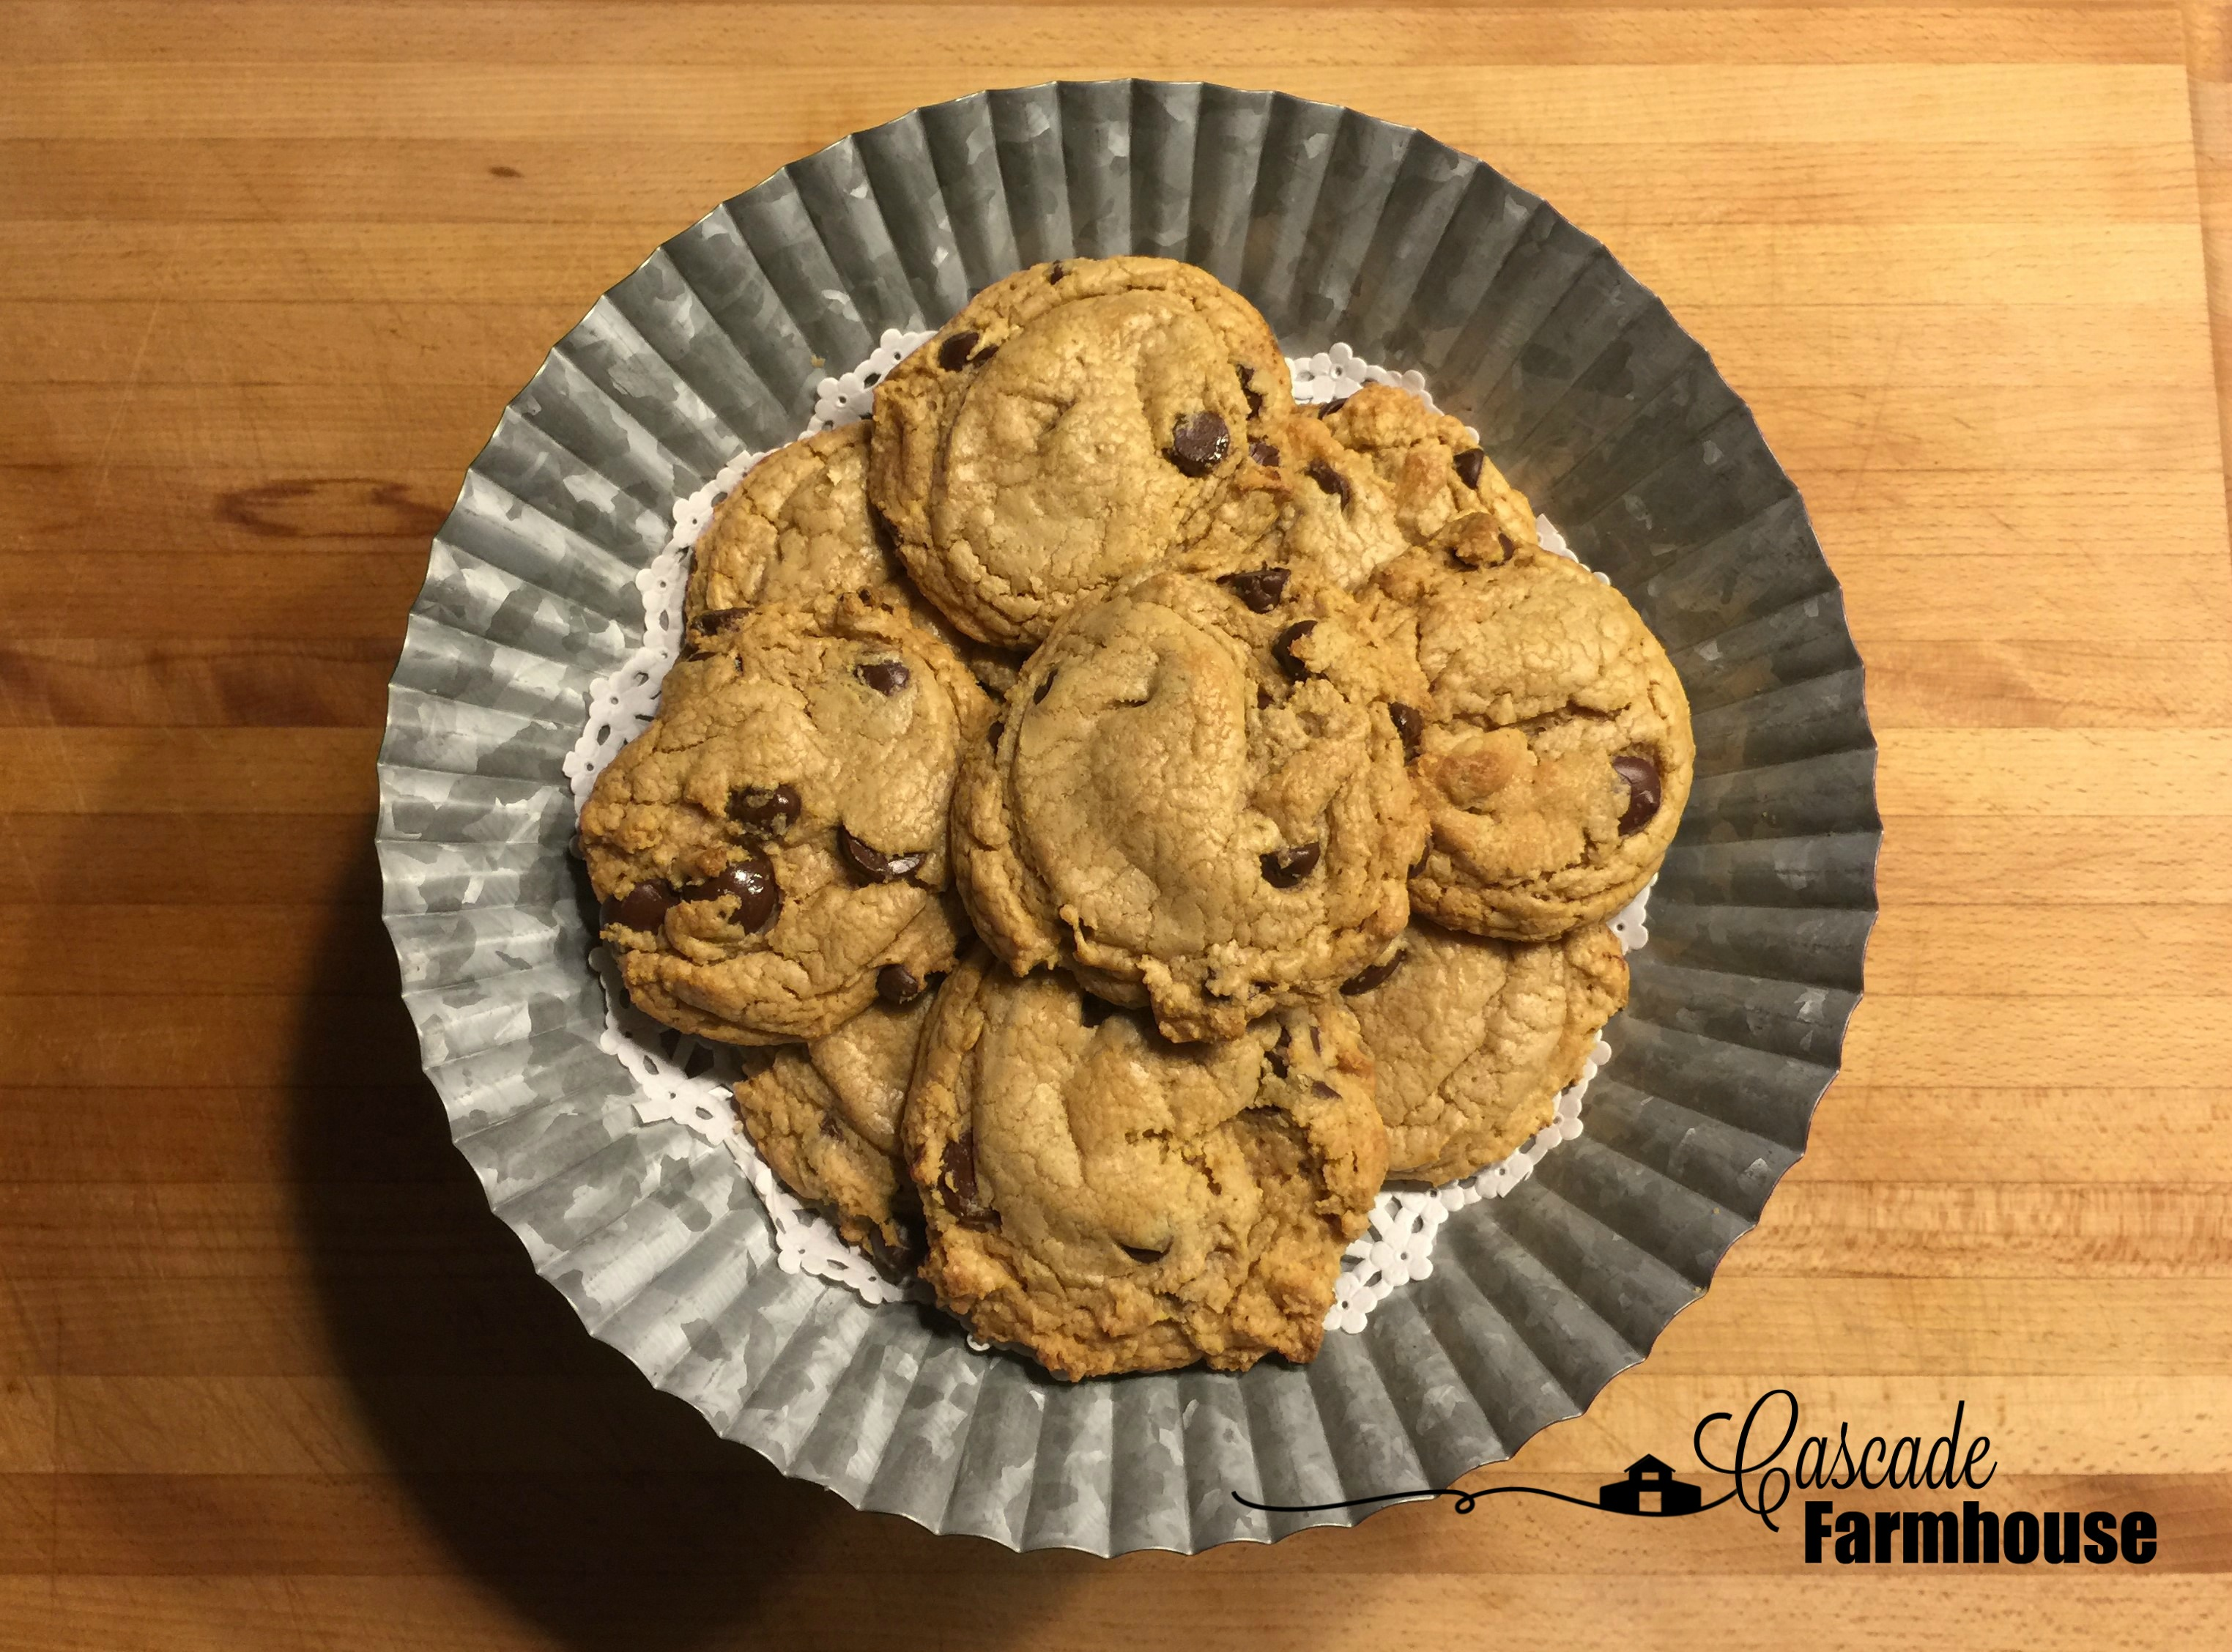 Yay, For Hot And Fresh Cookies From The Oven!